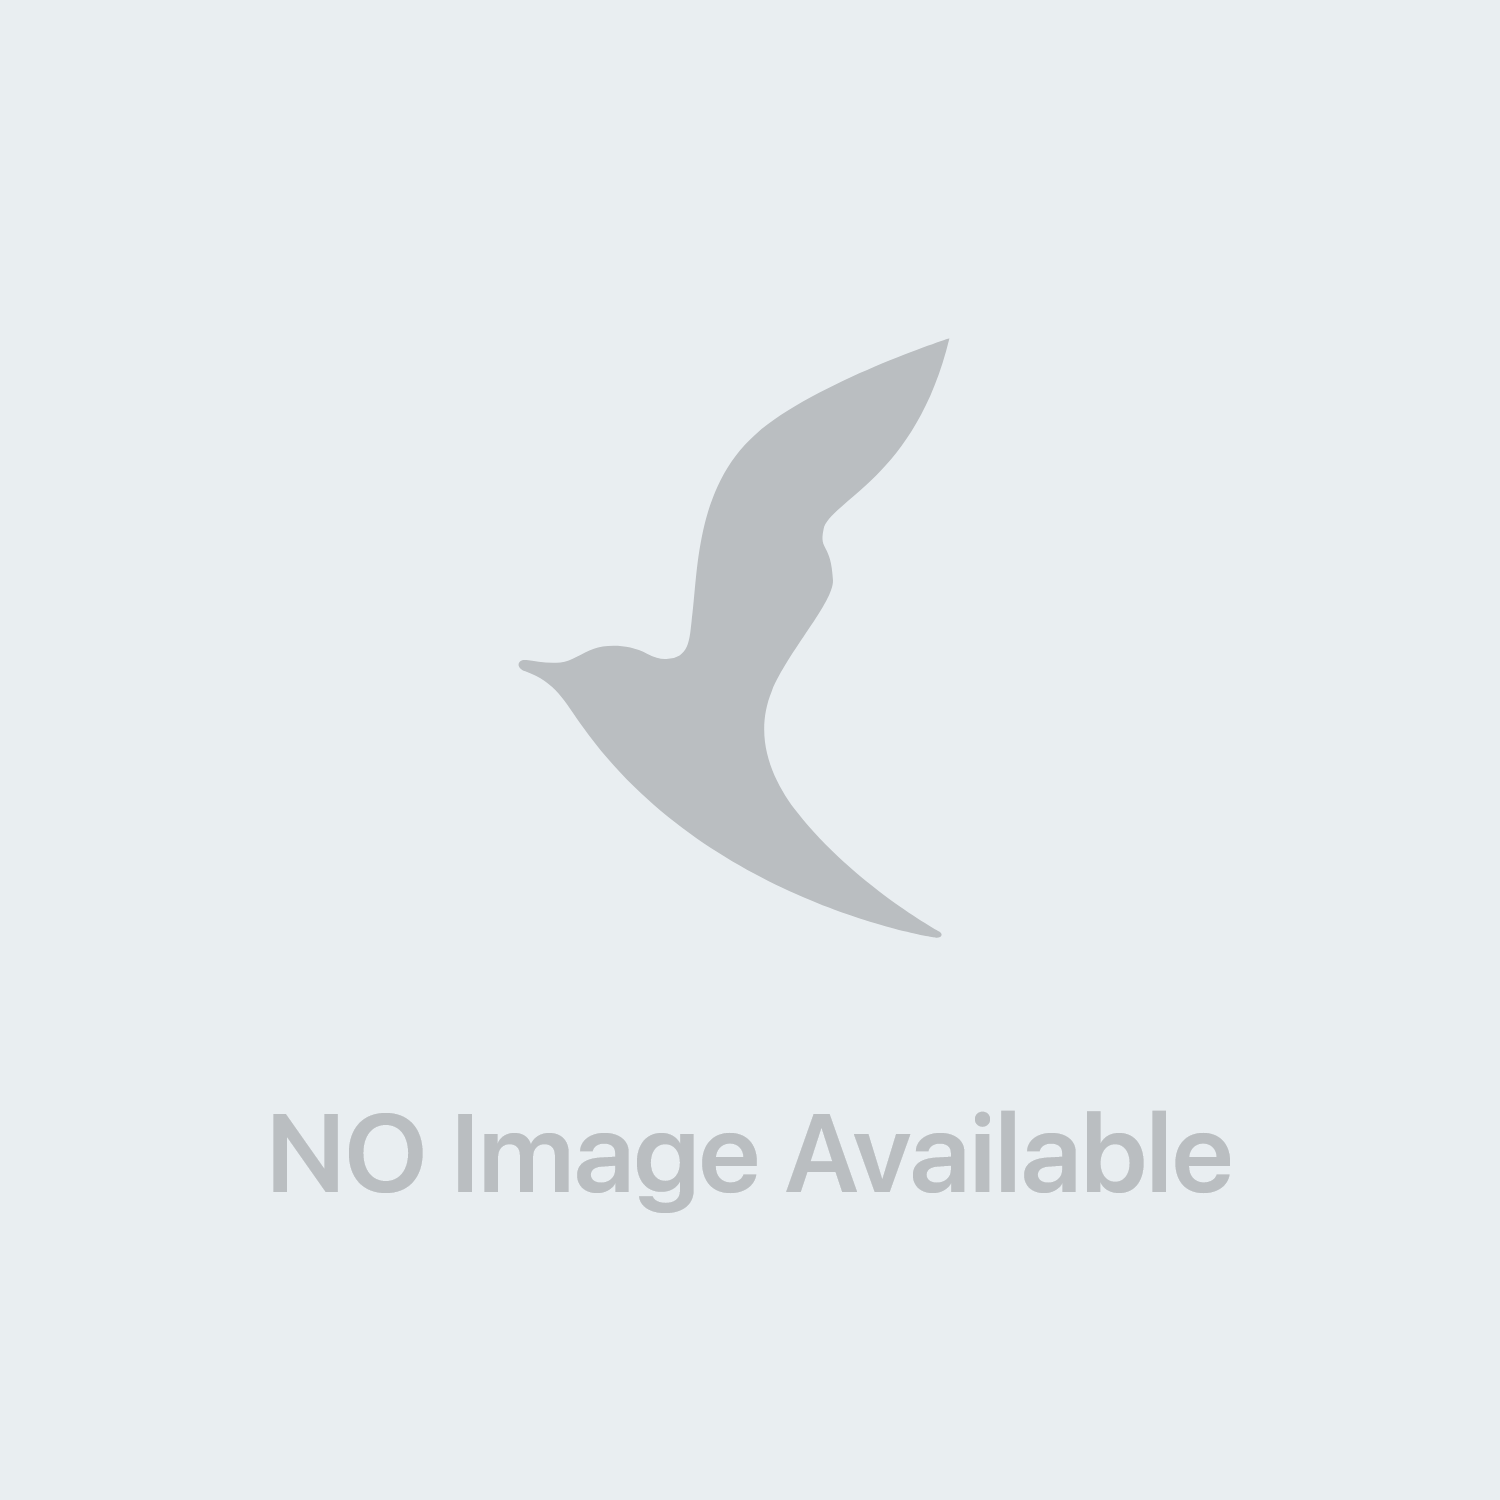 Avène Eau Thermale Acqua Termale Spray 300 ml